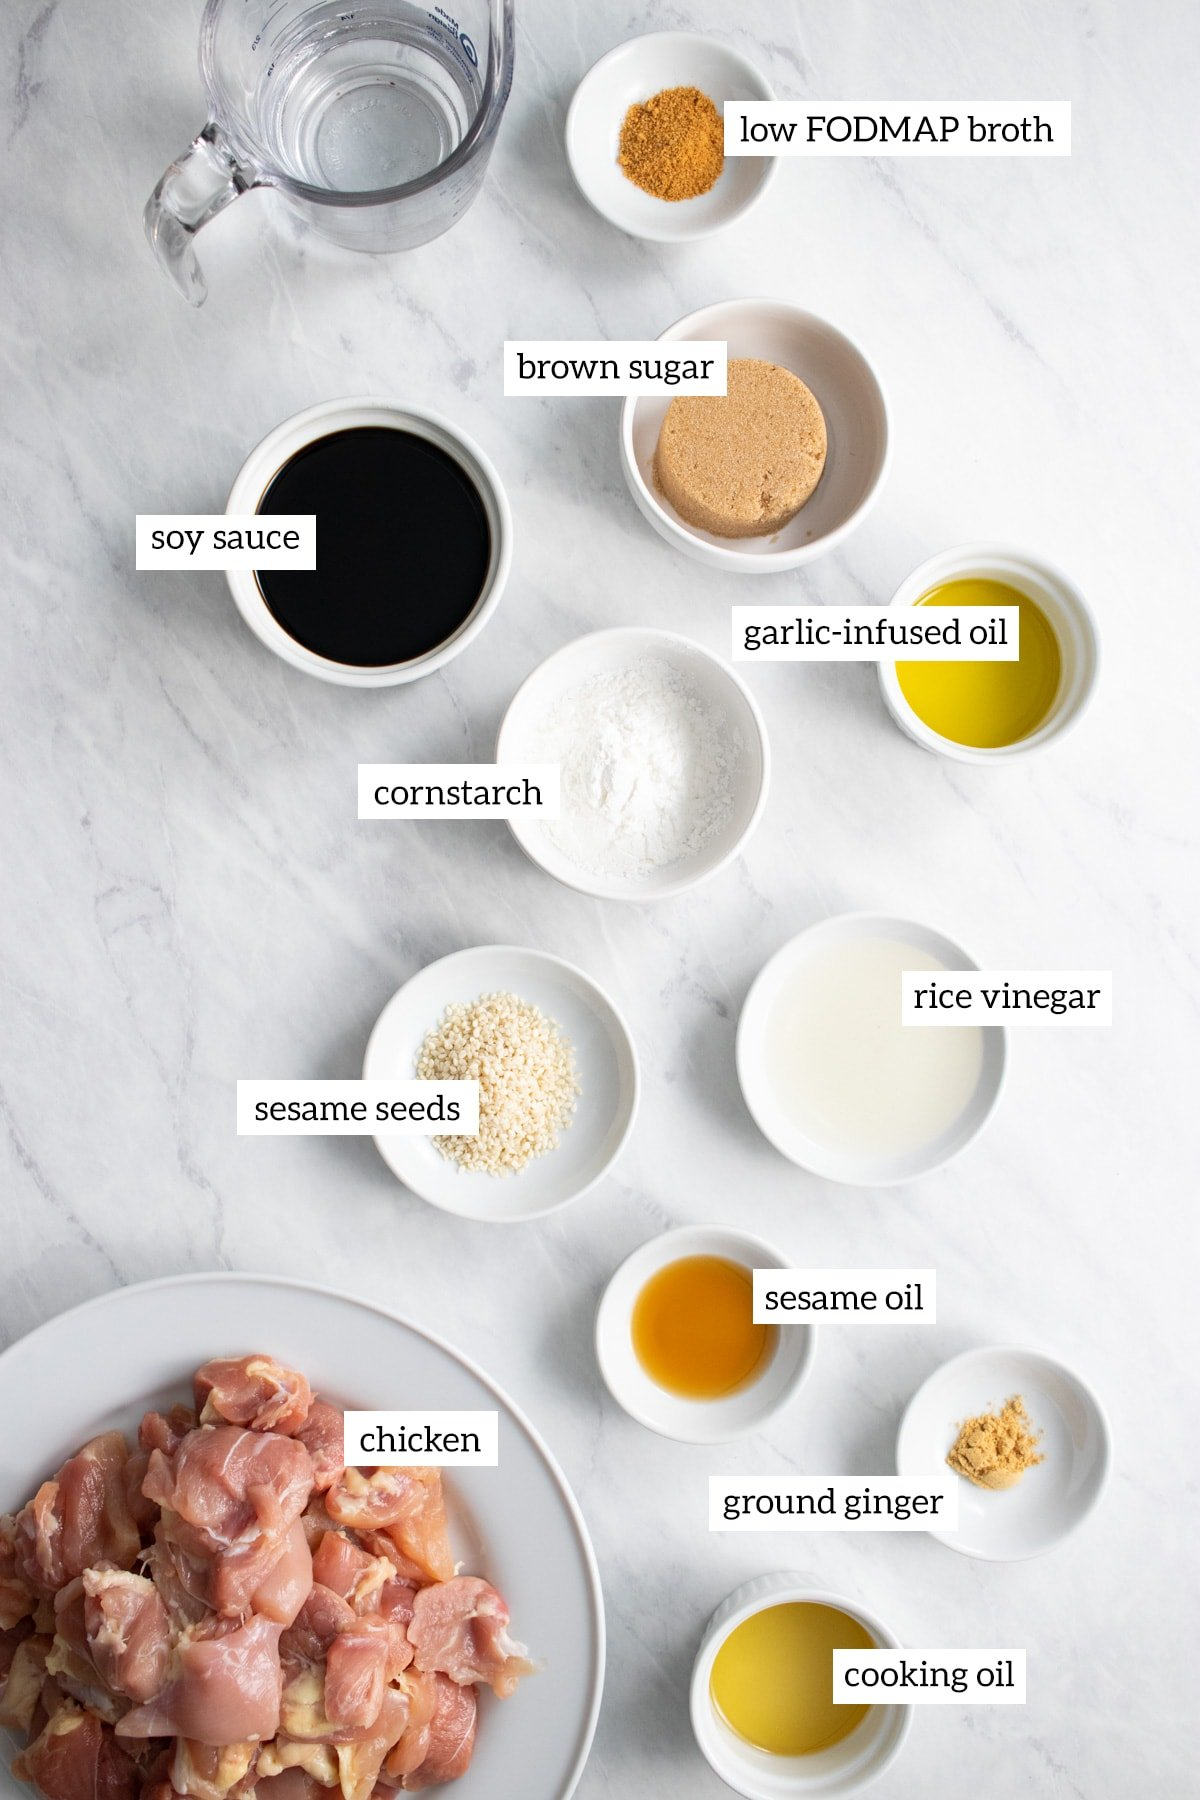 Ingredients needed for sesame chicken measured out into individual white bowls.